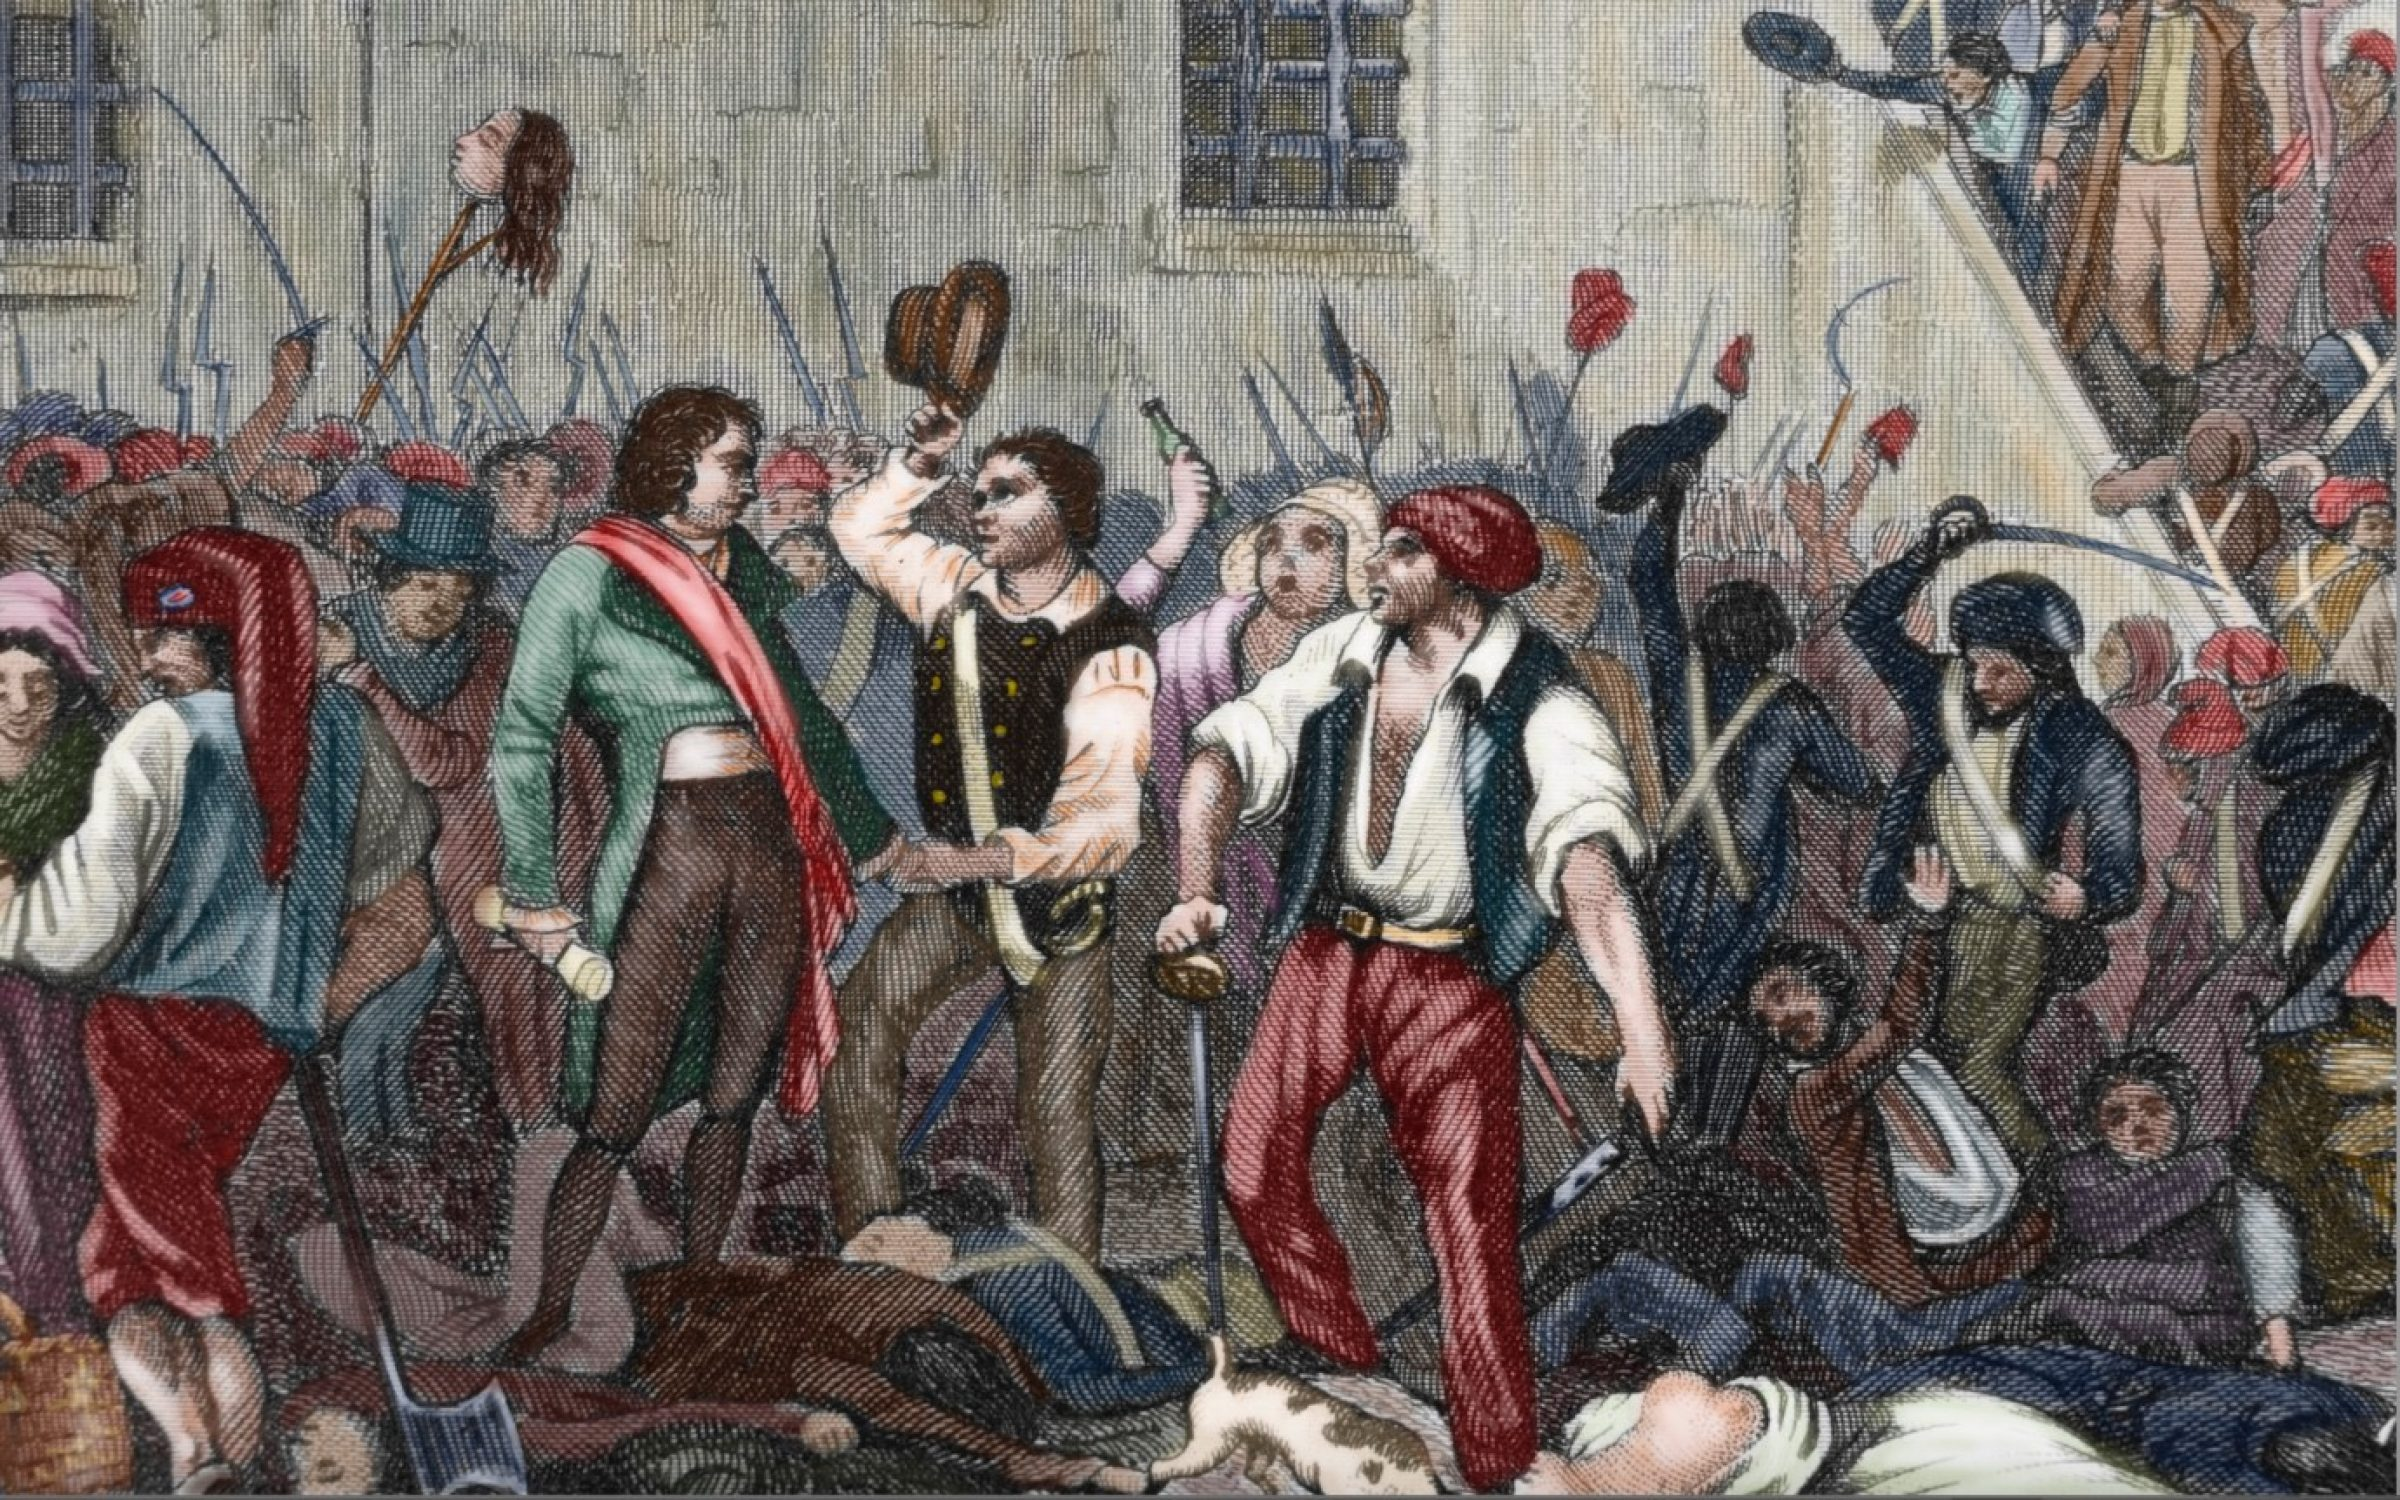 An illustration of the 'sans-culottes', radical revolutionaries who took from Carmagnola the name for their hemp-laden jackets. Credit: Prisma / UIG / Getty Images.